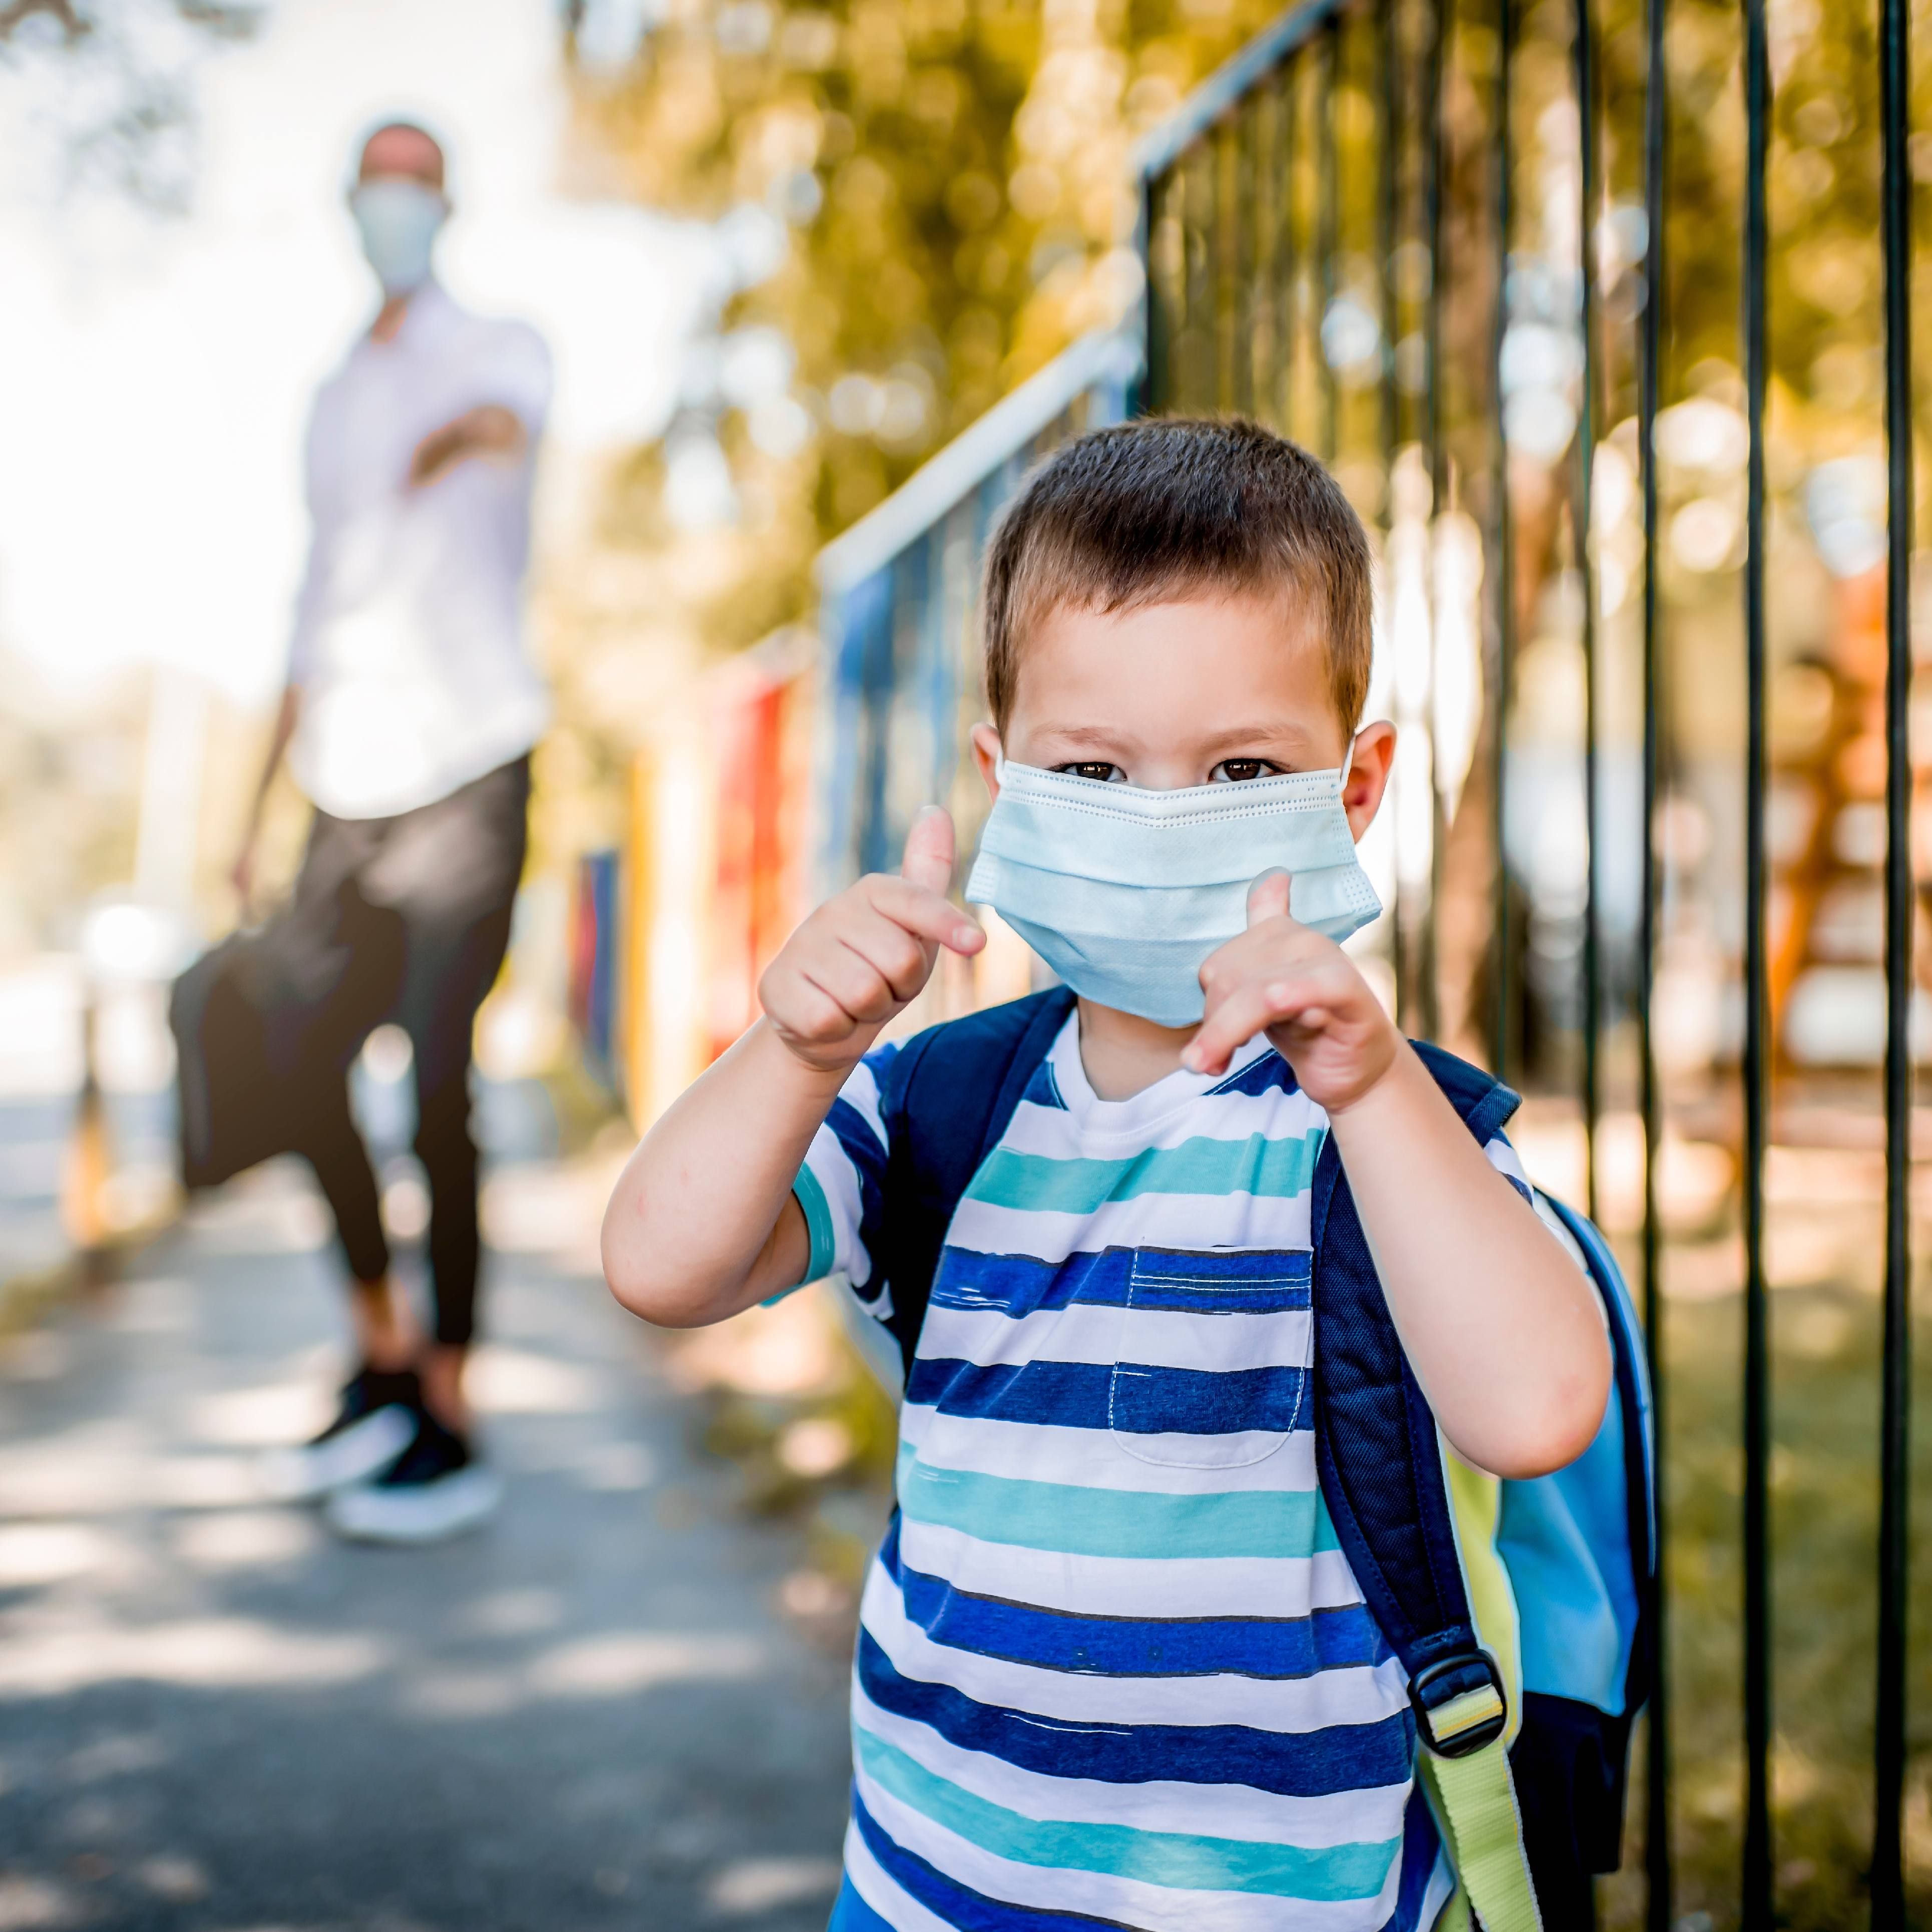 a little white pre-school or kindergarten aged boy in a striped shirt wearing a mask and carrying a backpack, getting ready to go into school